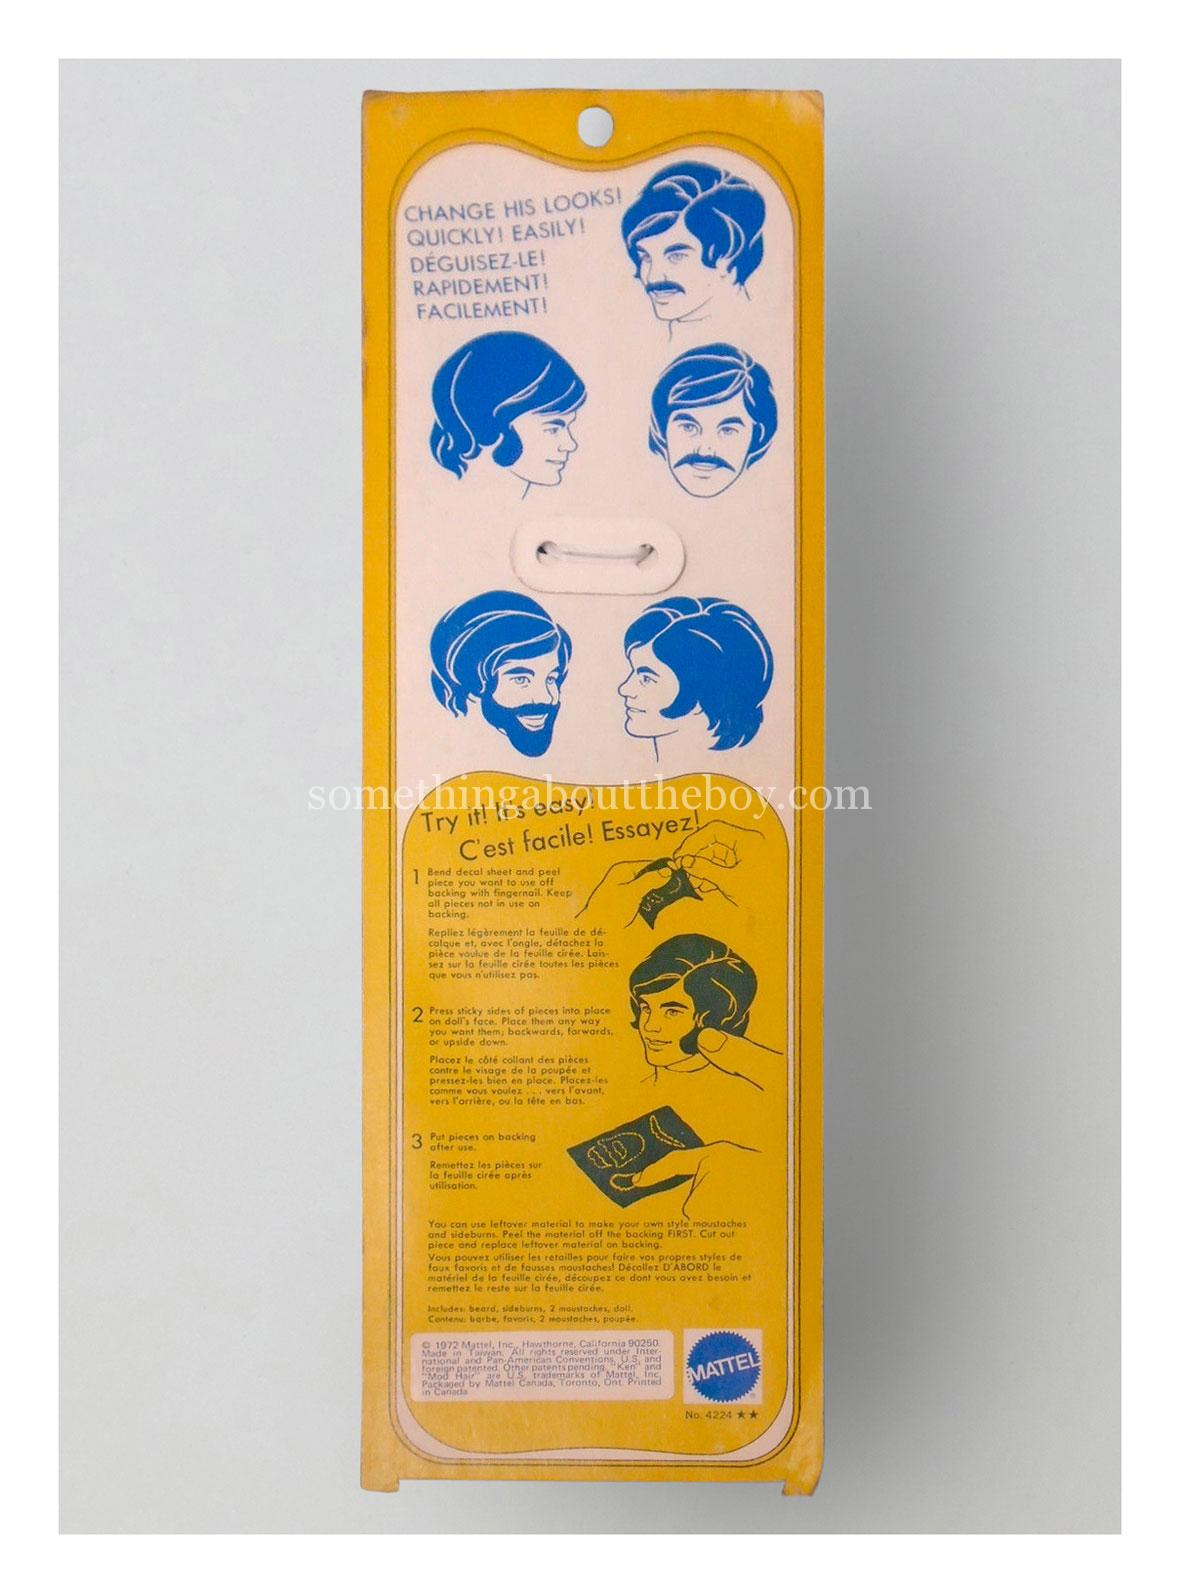 1973 #4224 Mod Hair Ken Canadian version (Made in Taiwan)